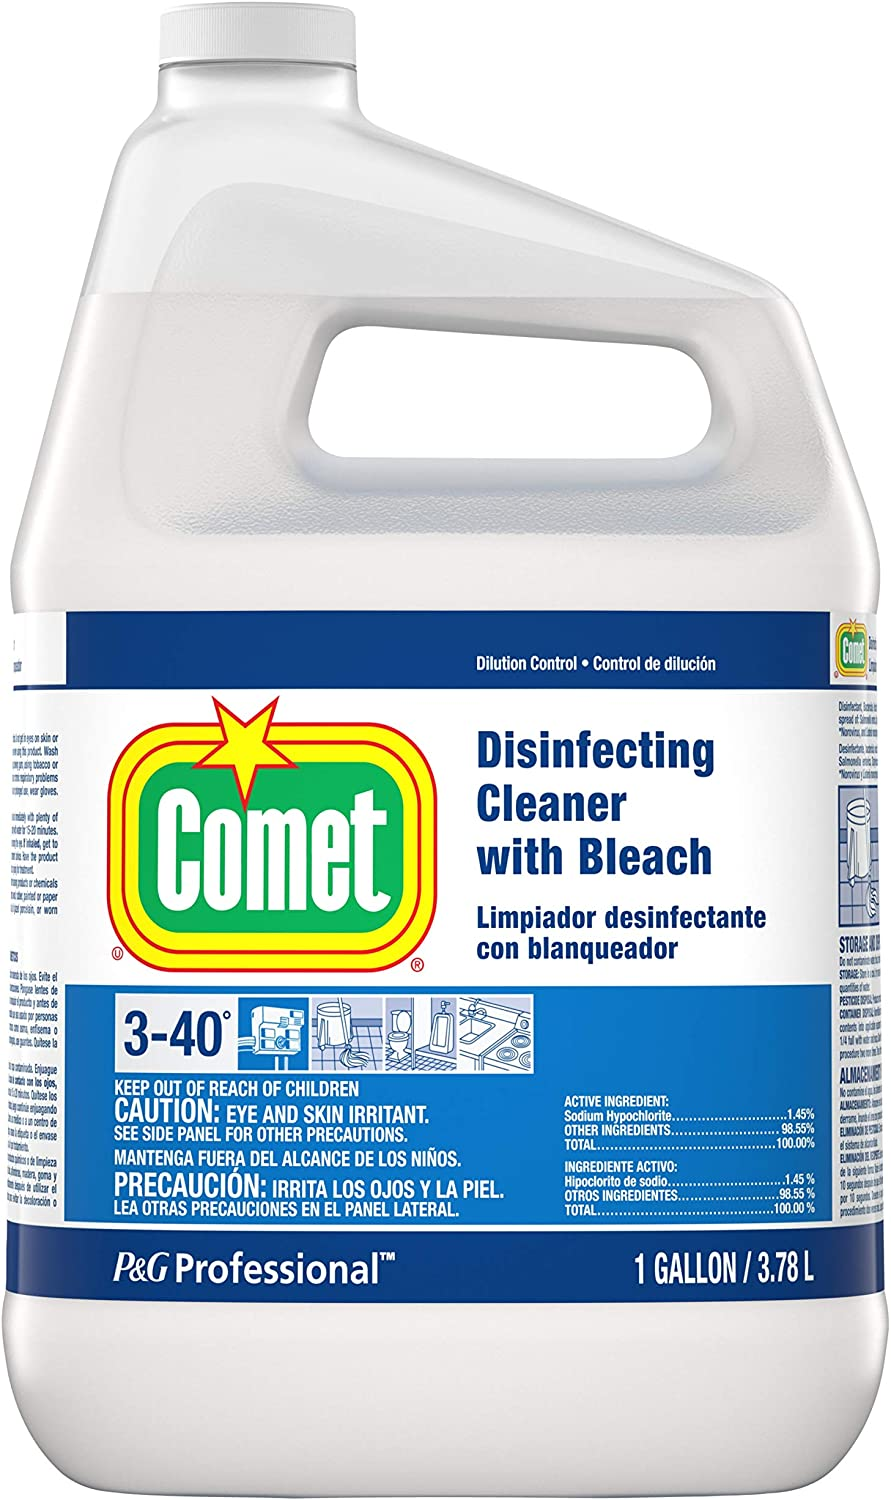 Comet Disinfecting Cleaner with Bleach, 1 Gallon